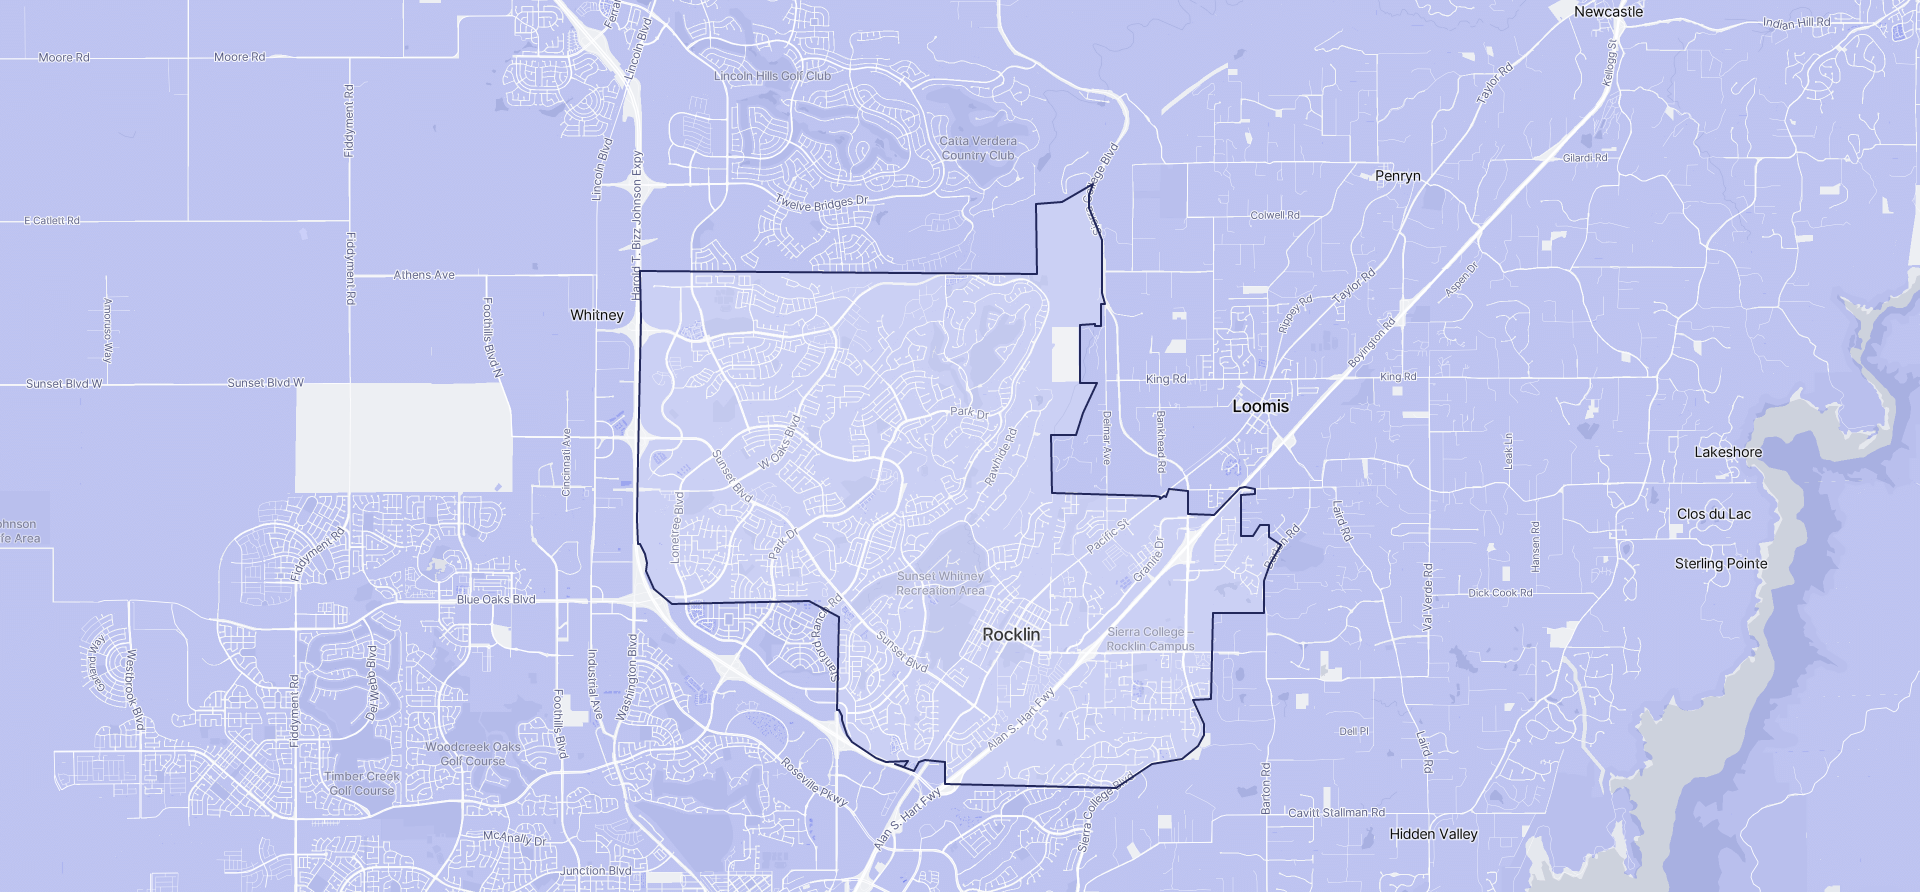 Image of Rocklin boundaries on a map.